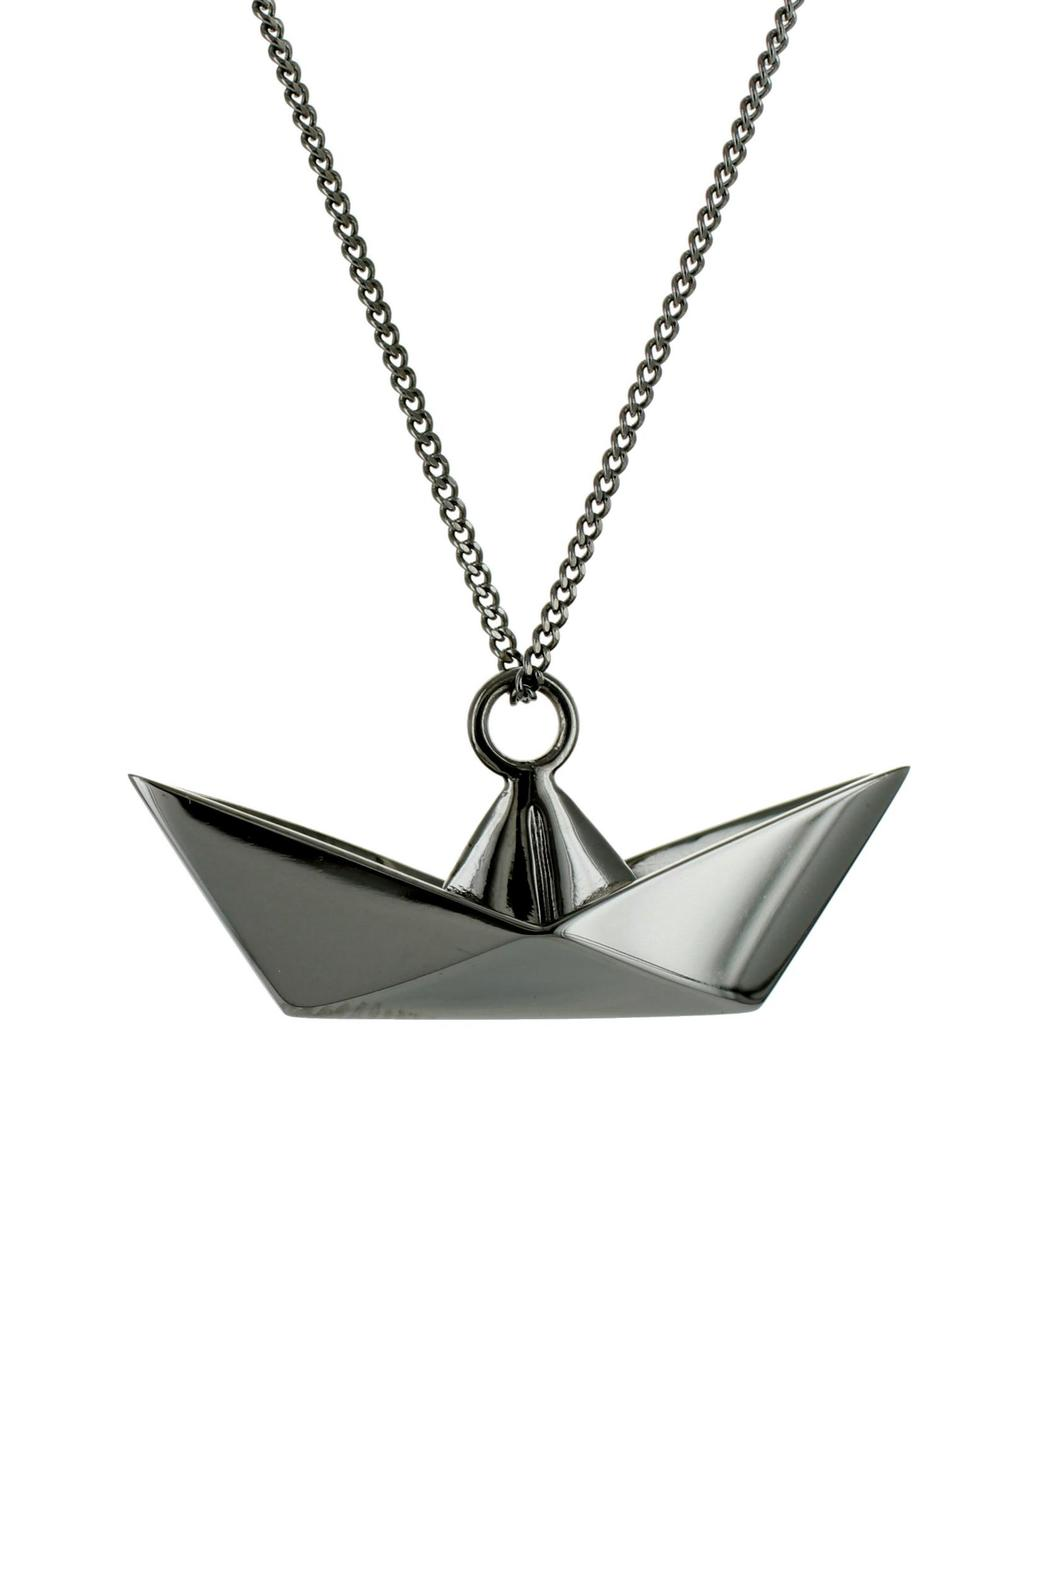 origami jewellery necklace boat silver from by